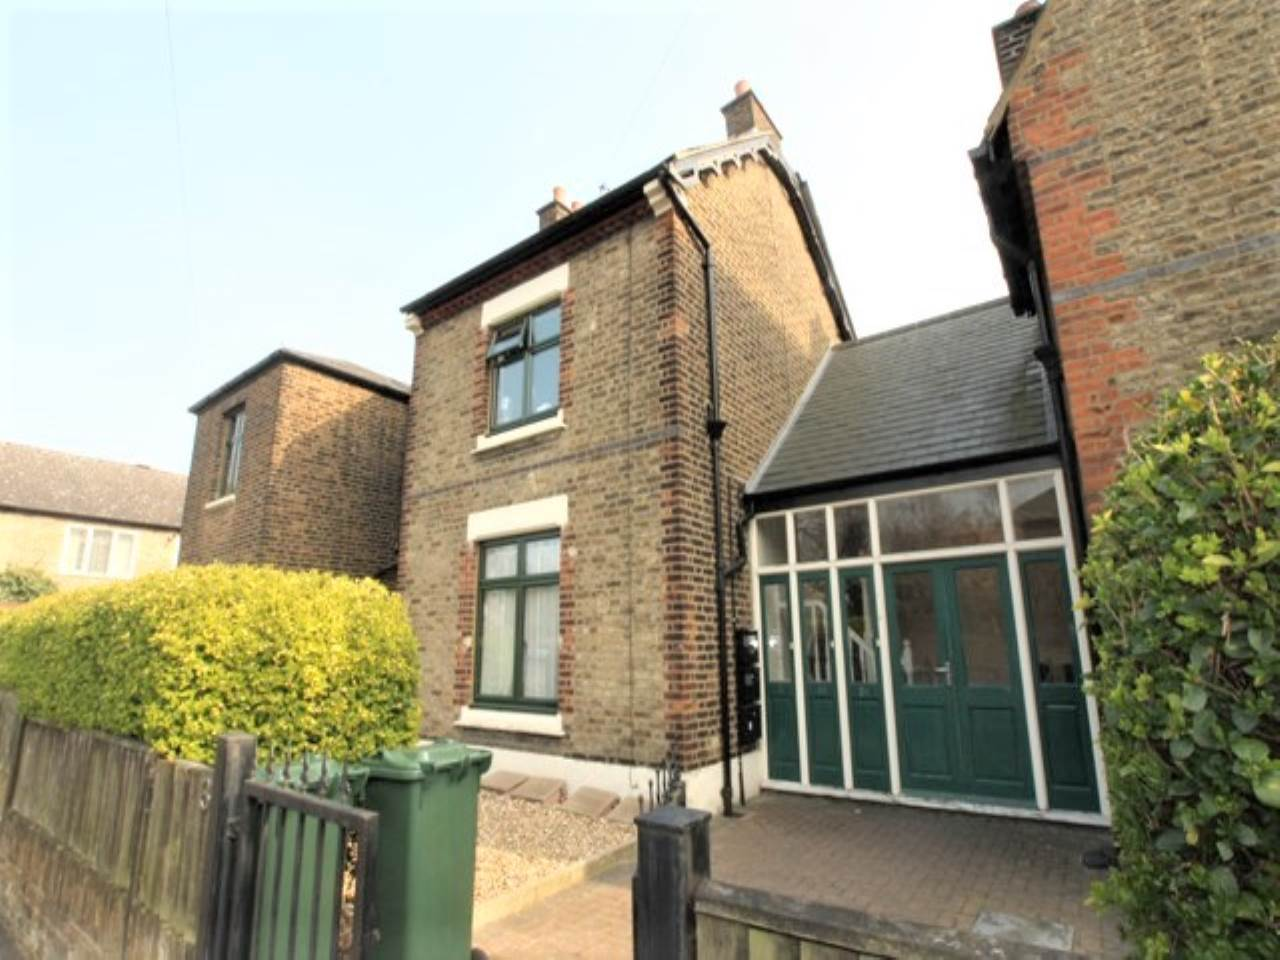 2 bed flat to rent in Vestry Road, Walthamstow, E17